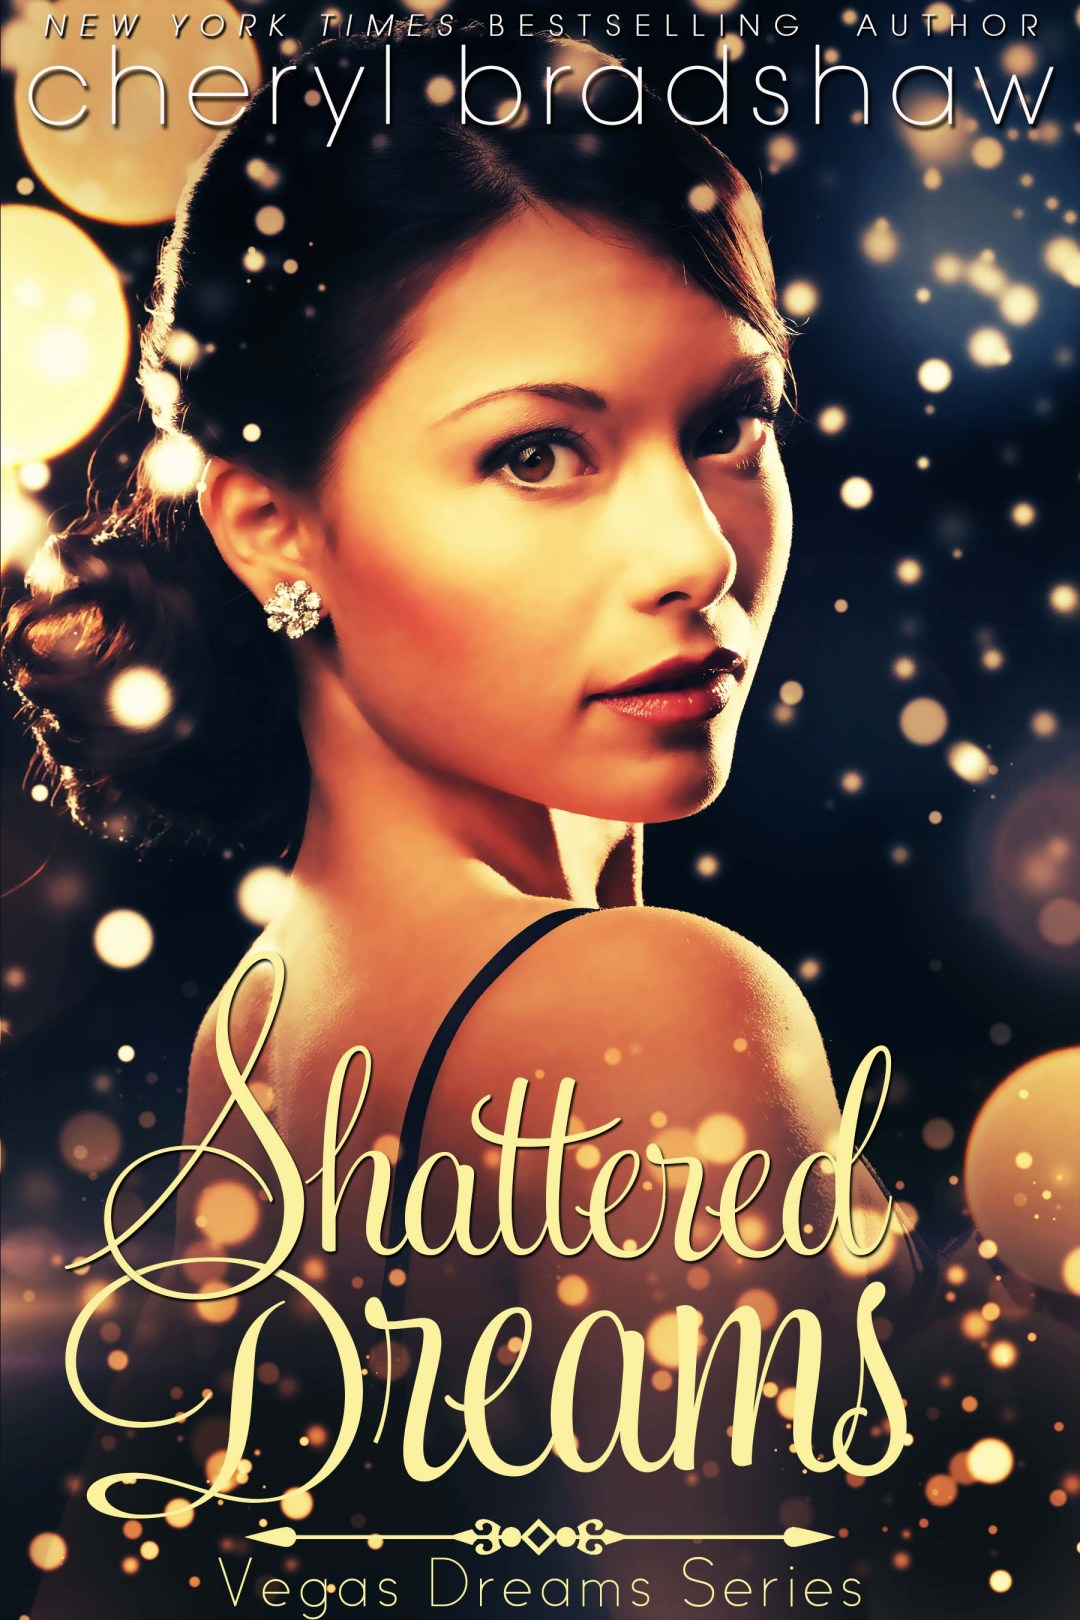 Shattered Dreams by Cheryl Bradshaw New York Times bestselling author